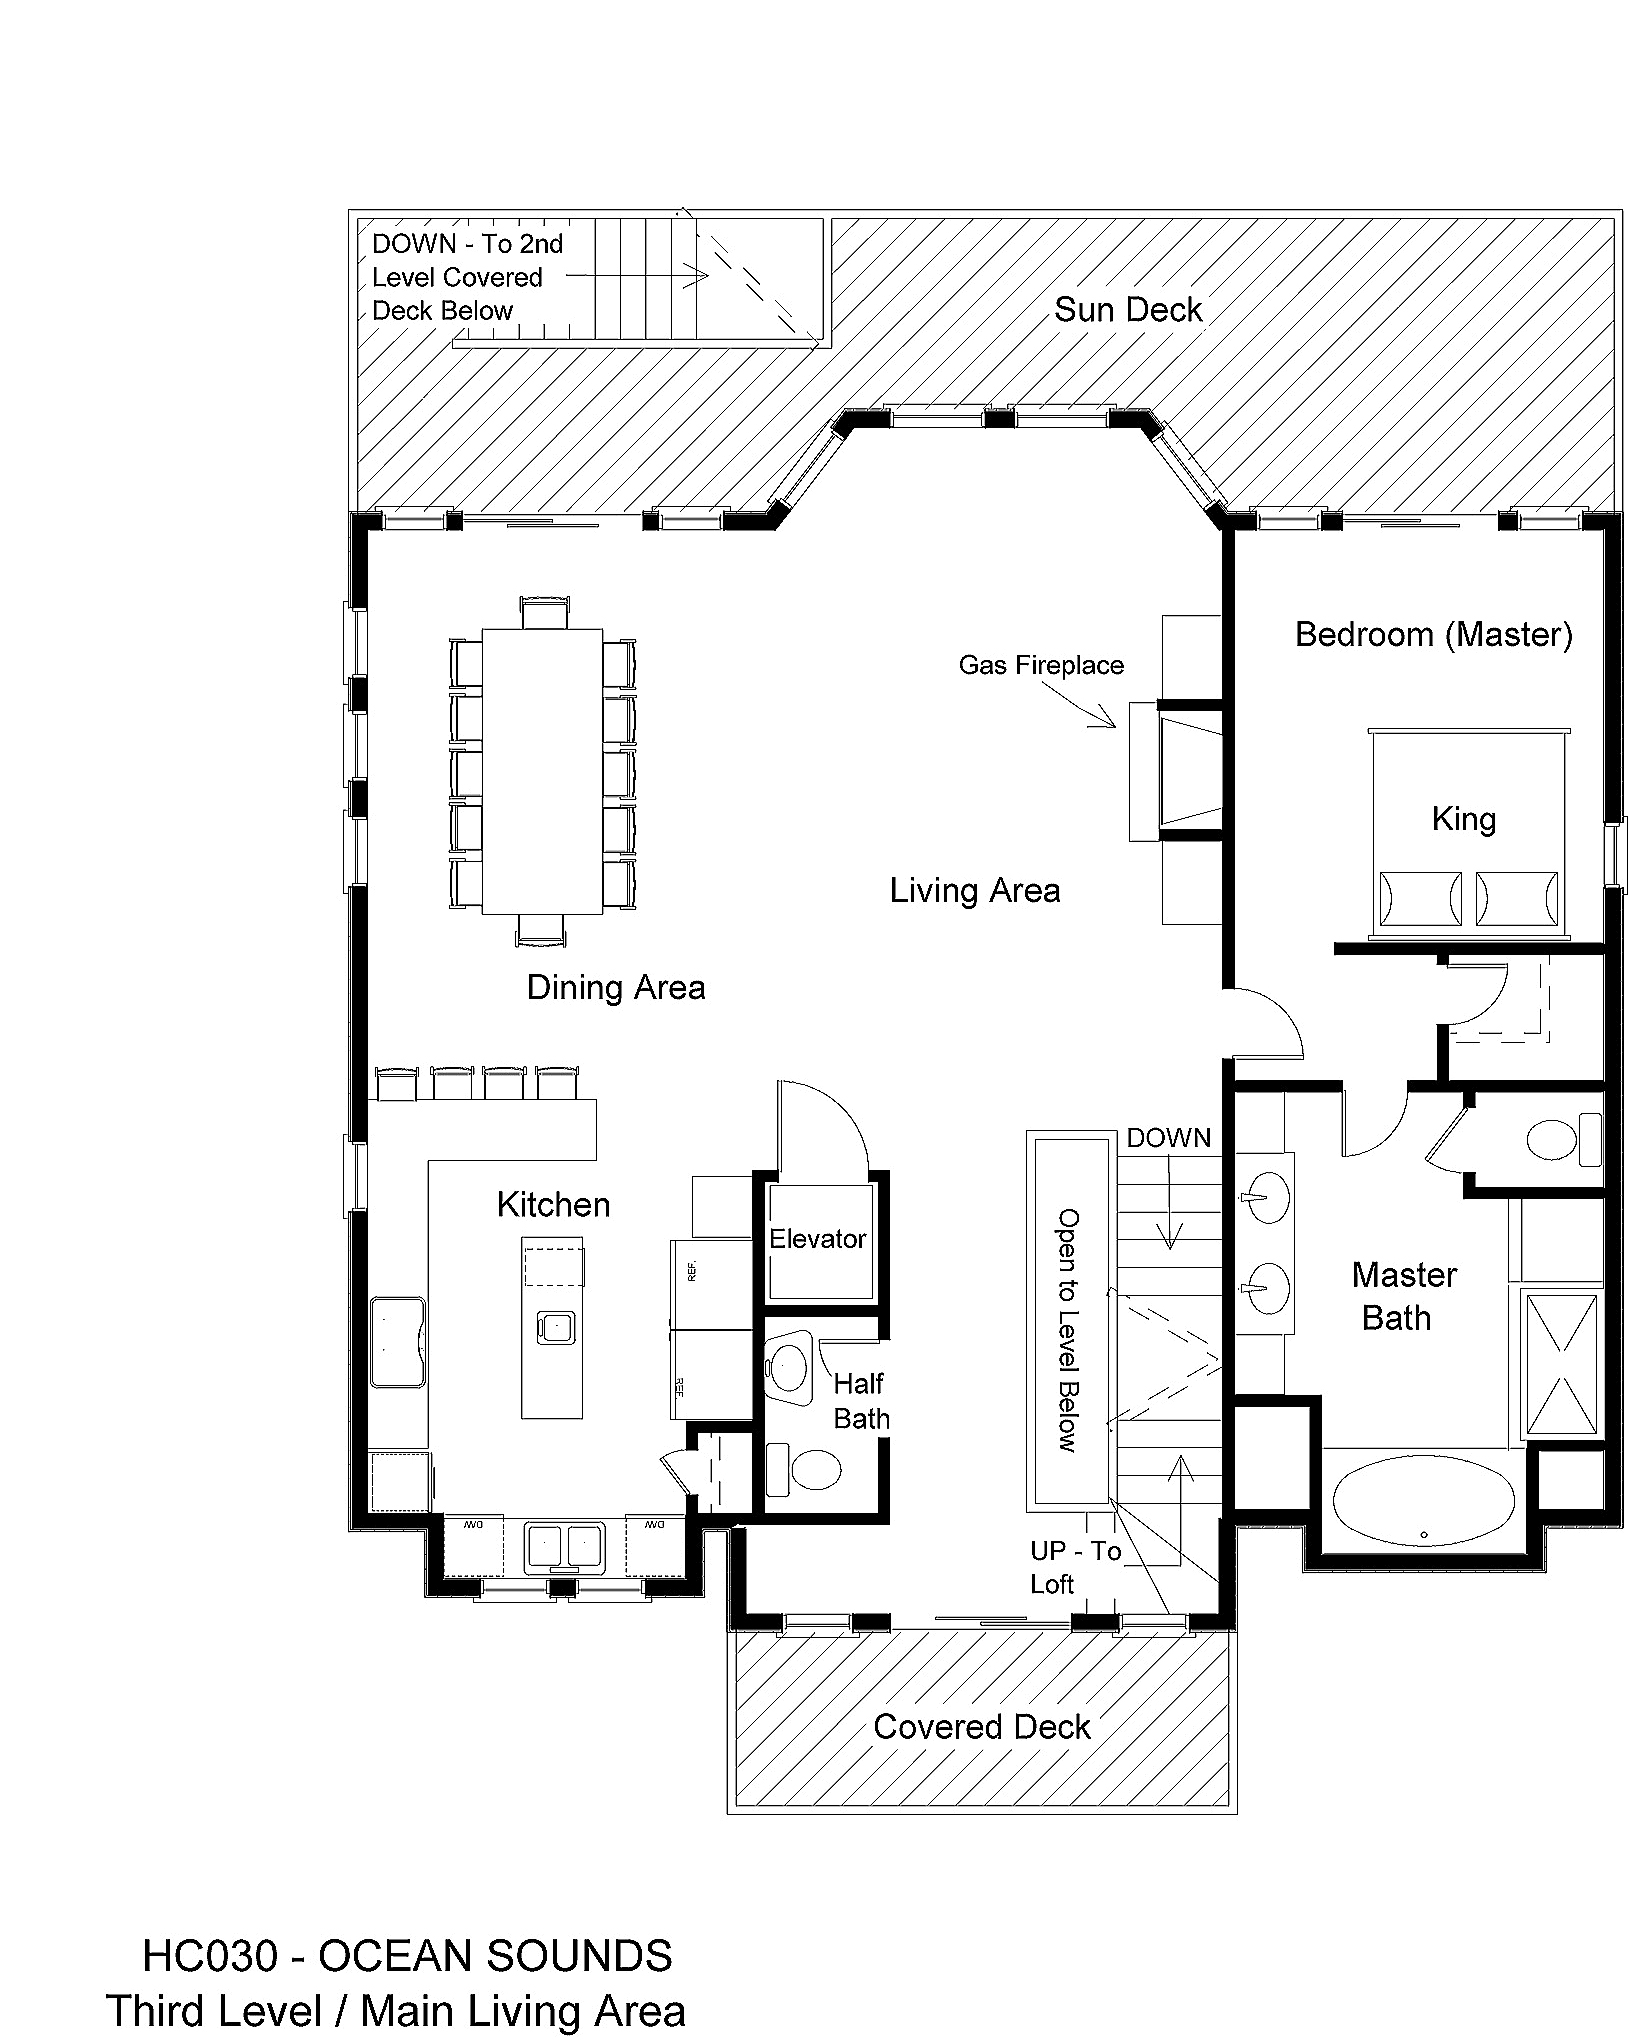 HC030 Ocean Sounds - Floorplan Level 3